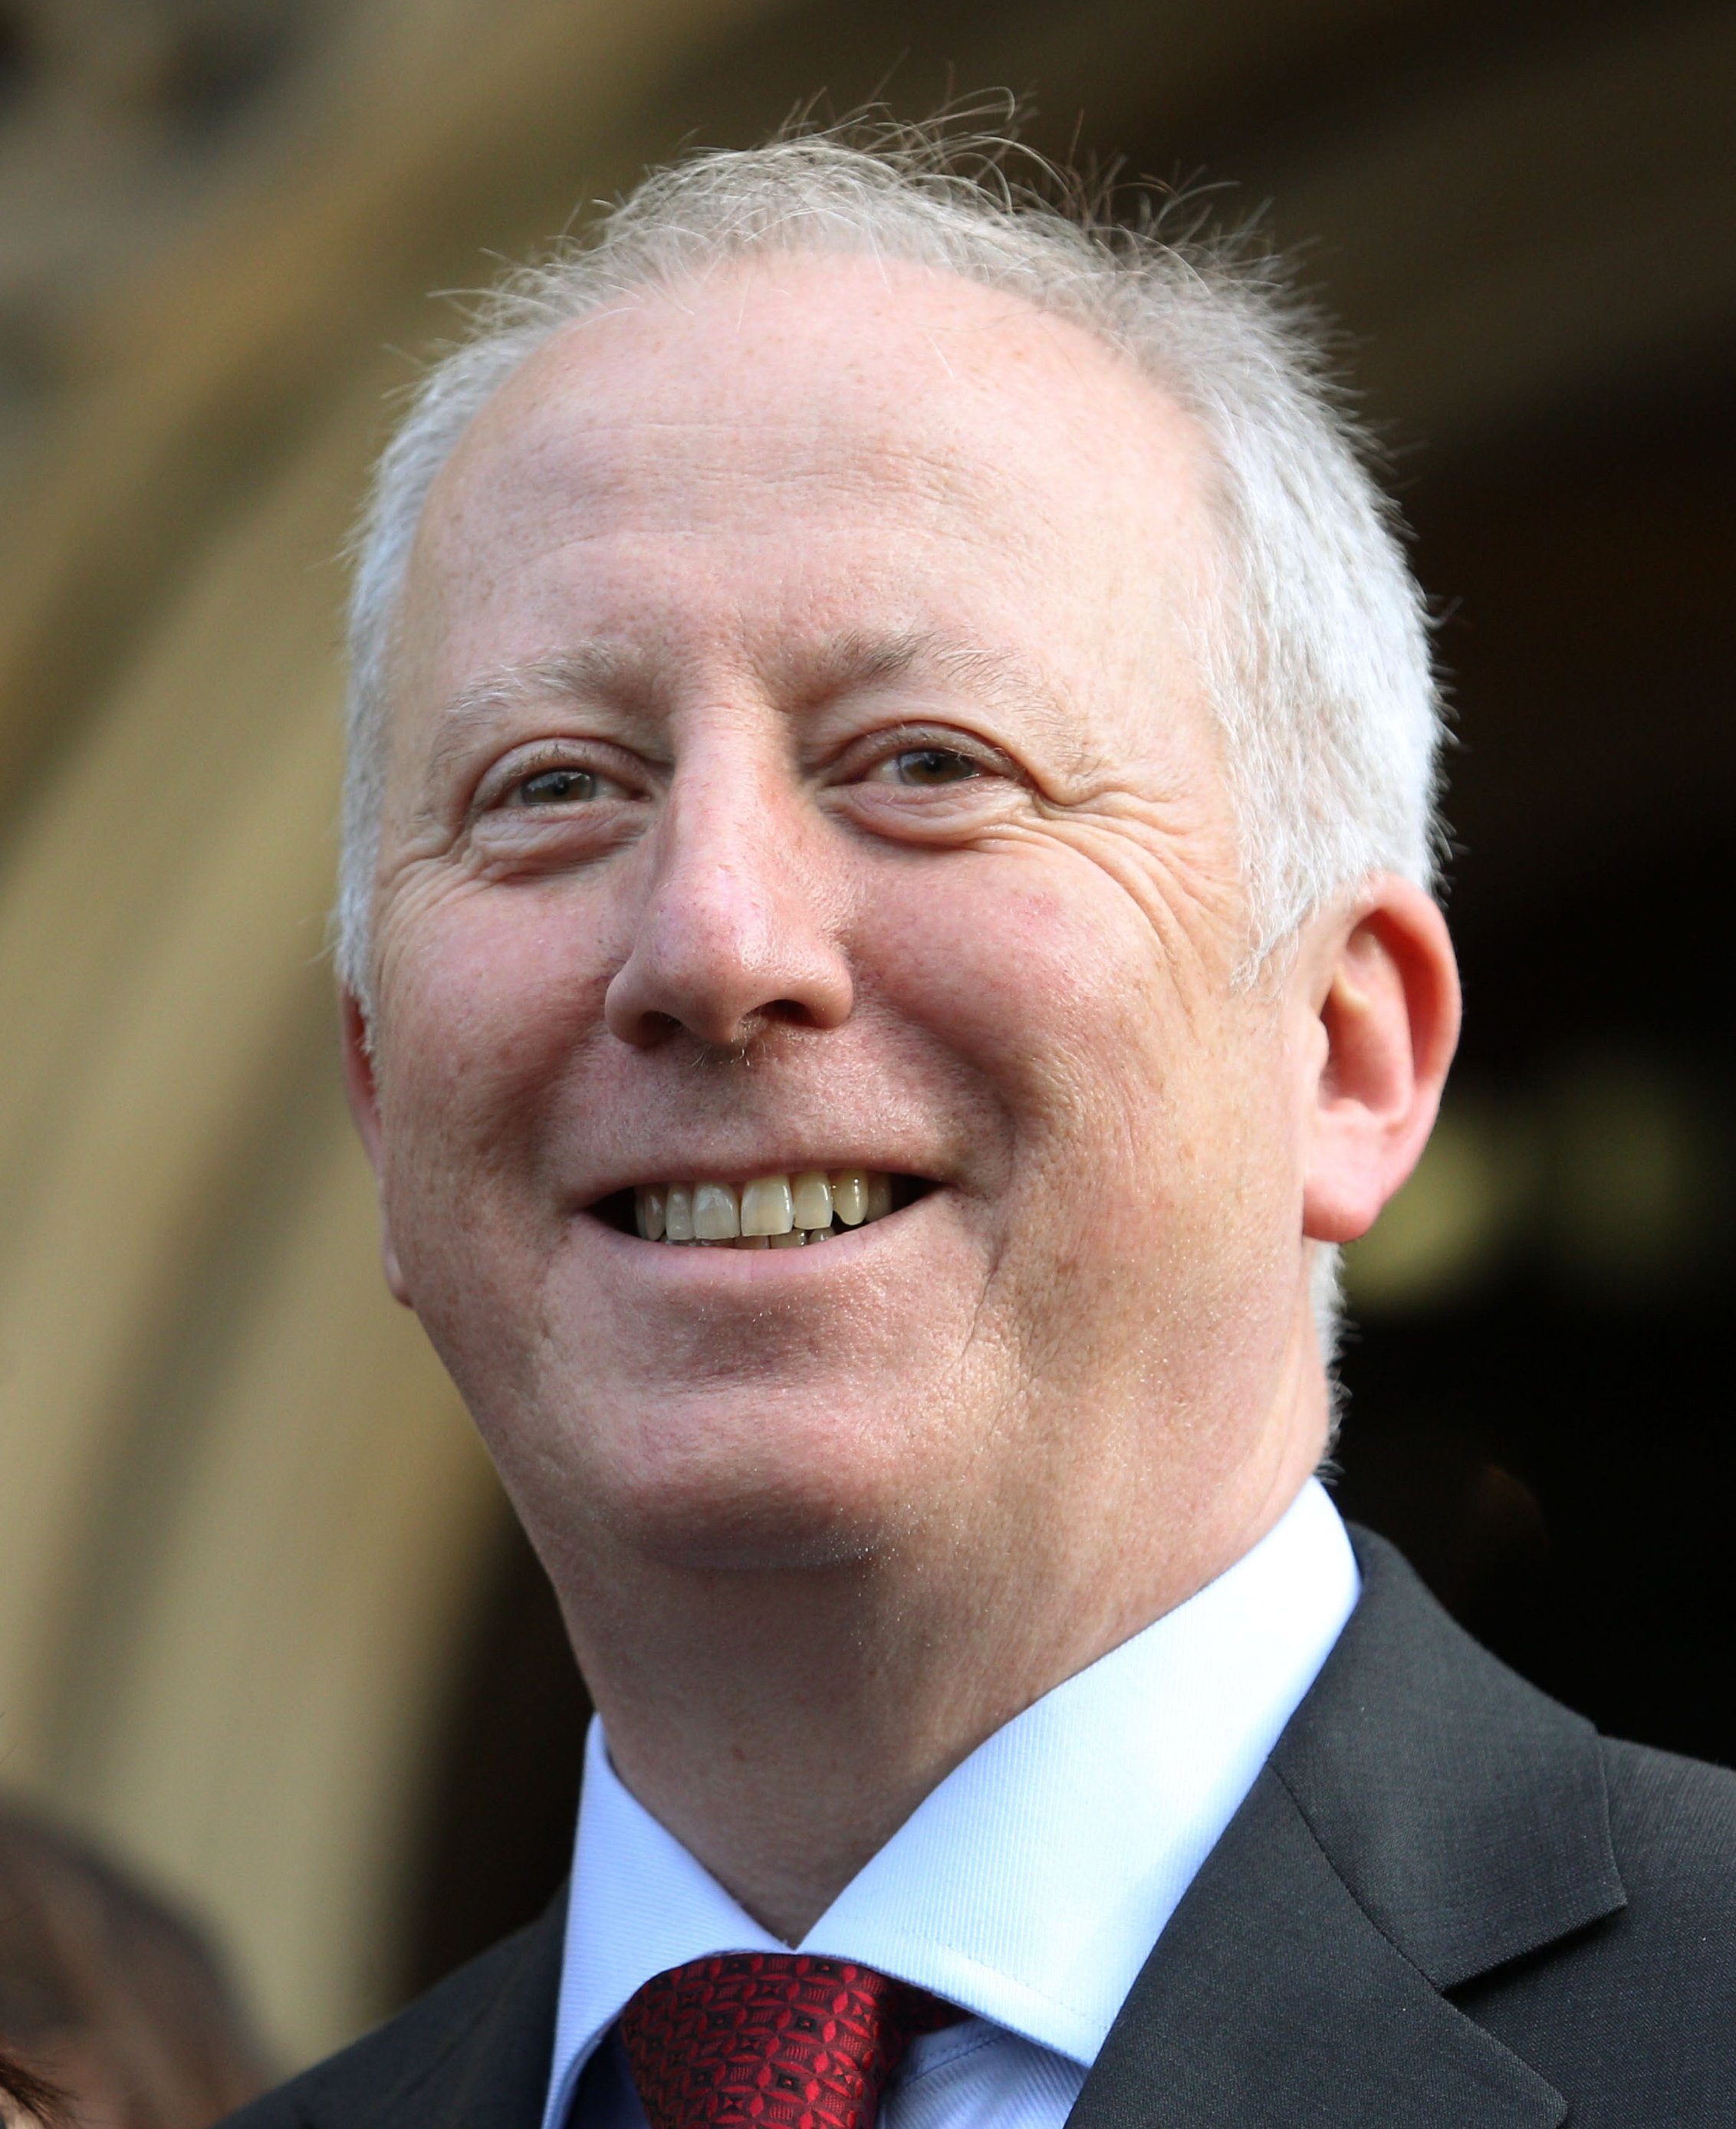 Middlesbrough MP Andy McDonald